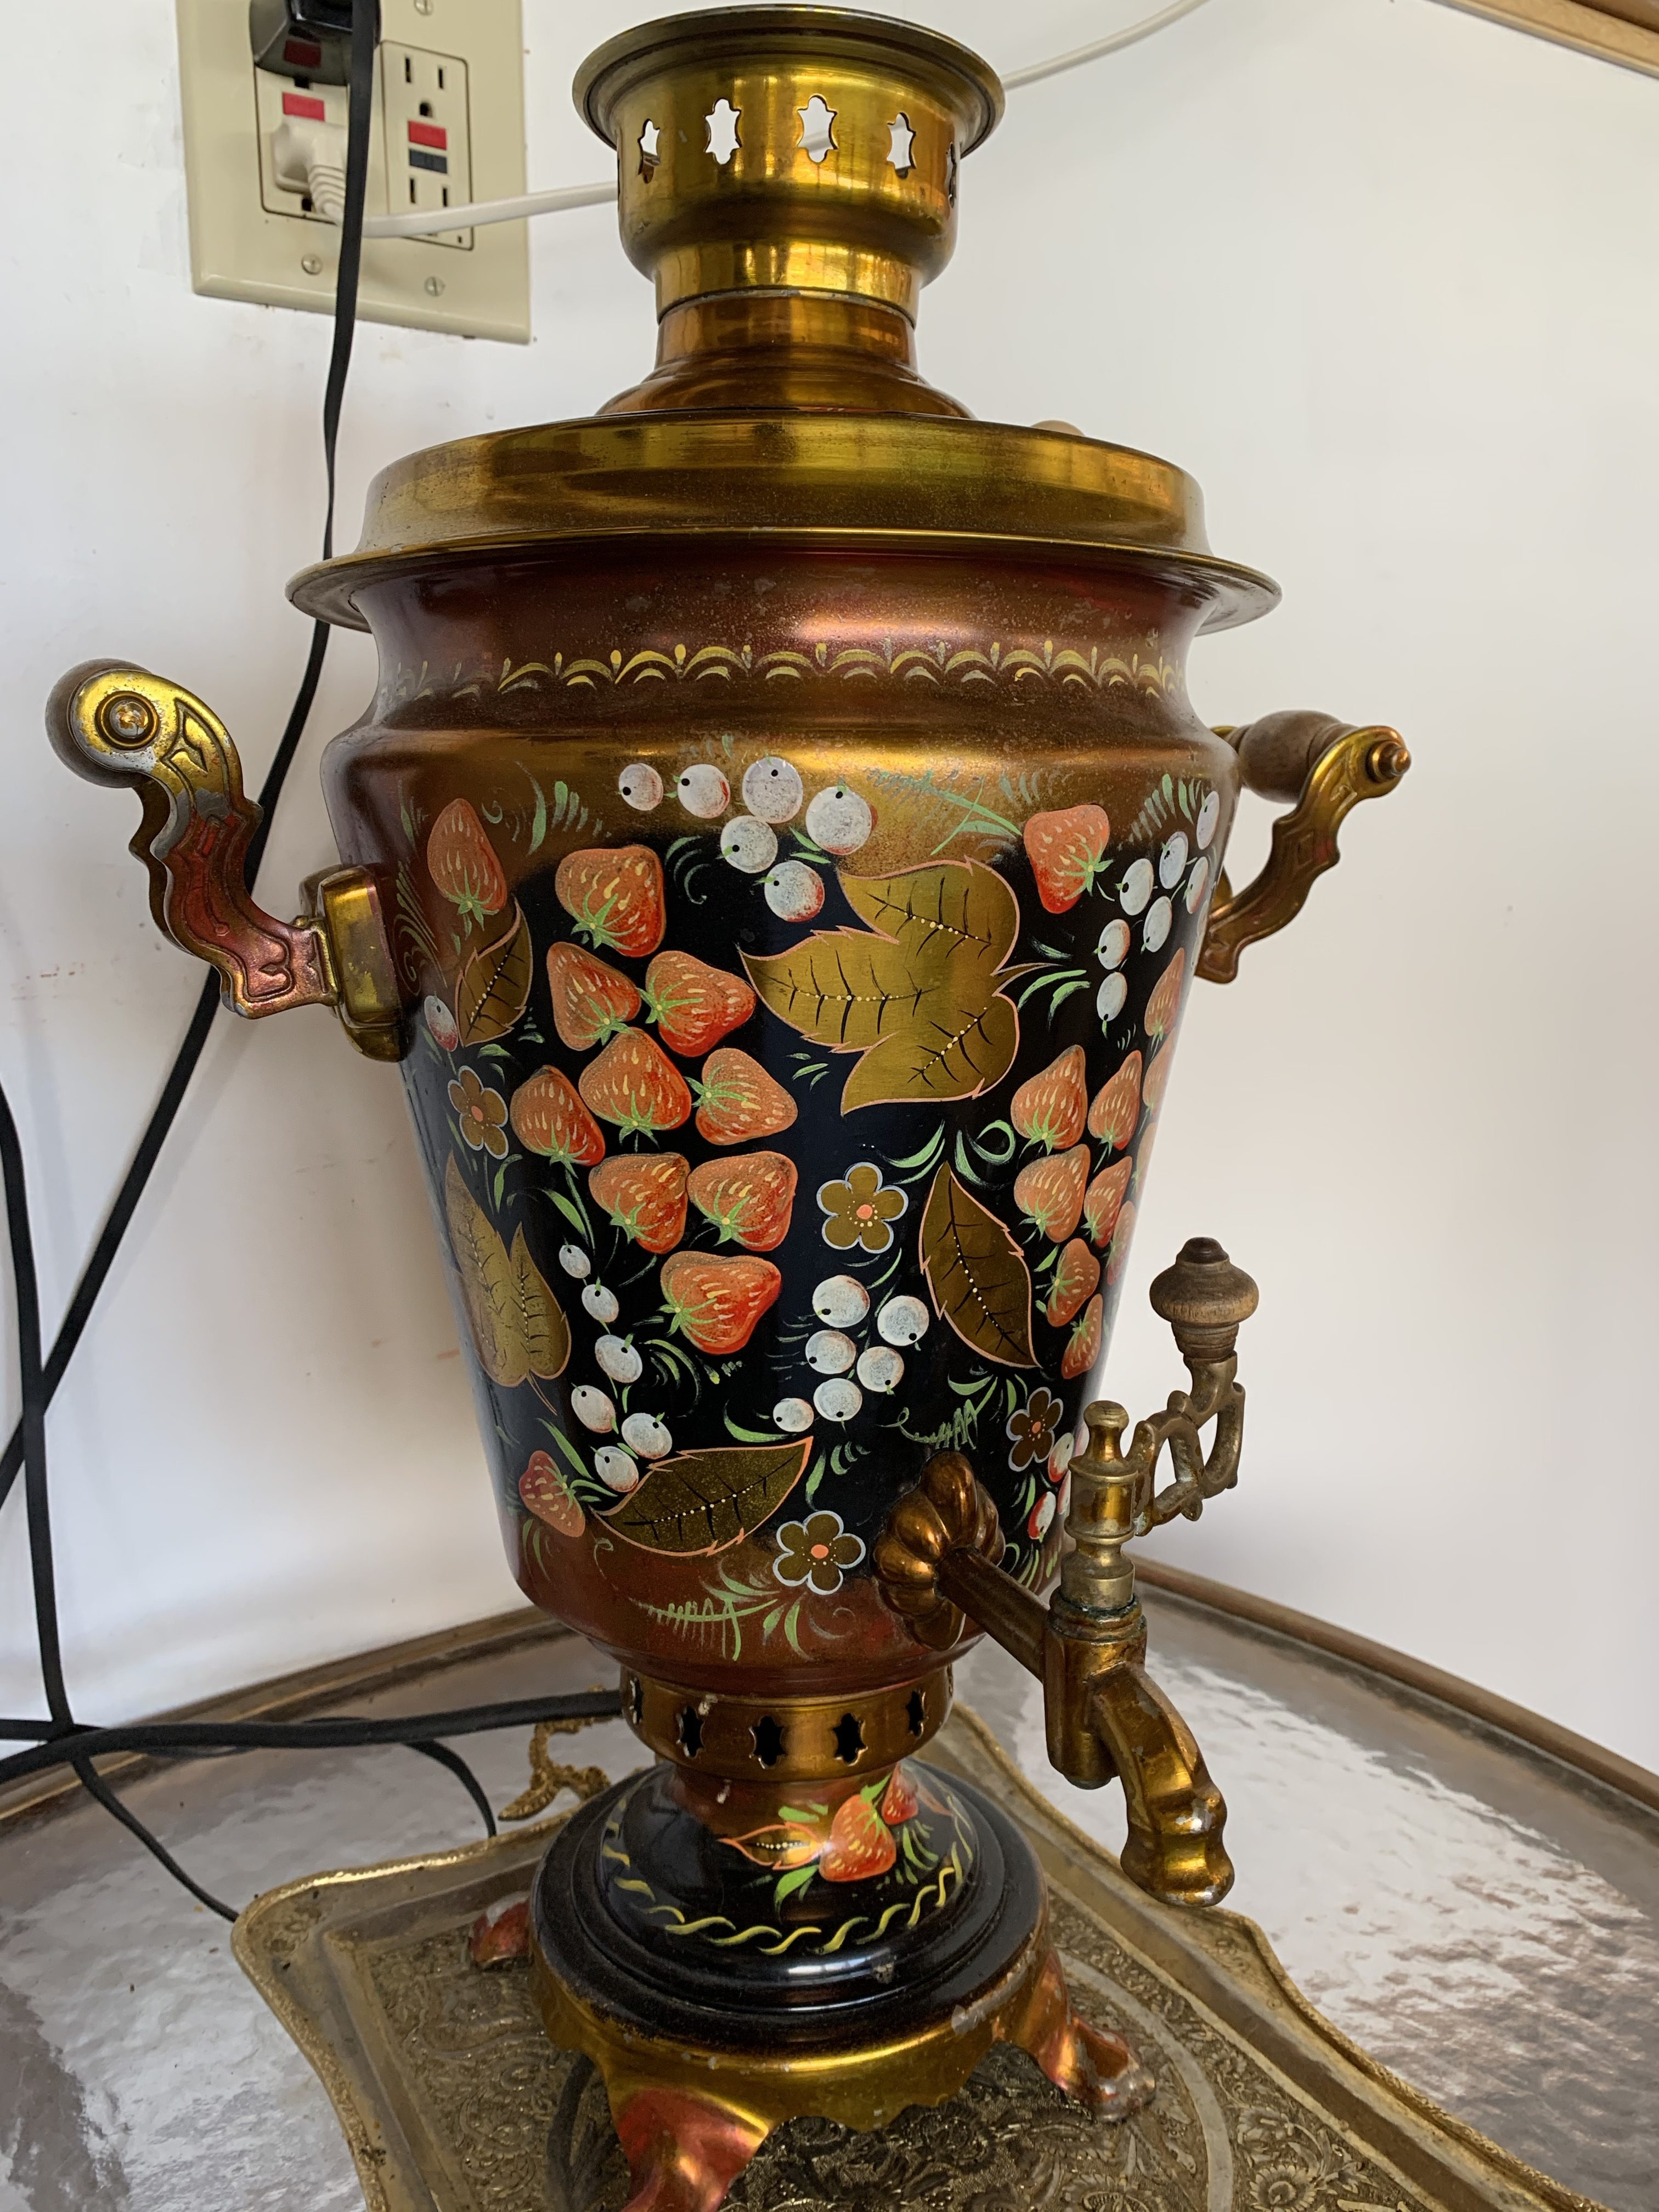 Large Electrical Samovar, traditional but convenient